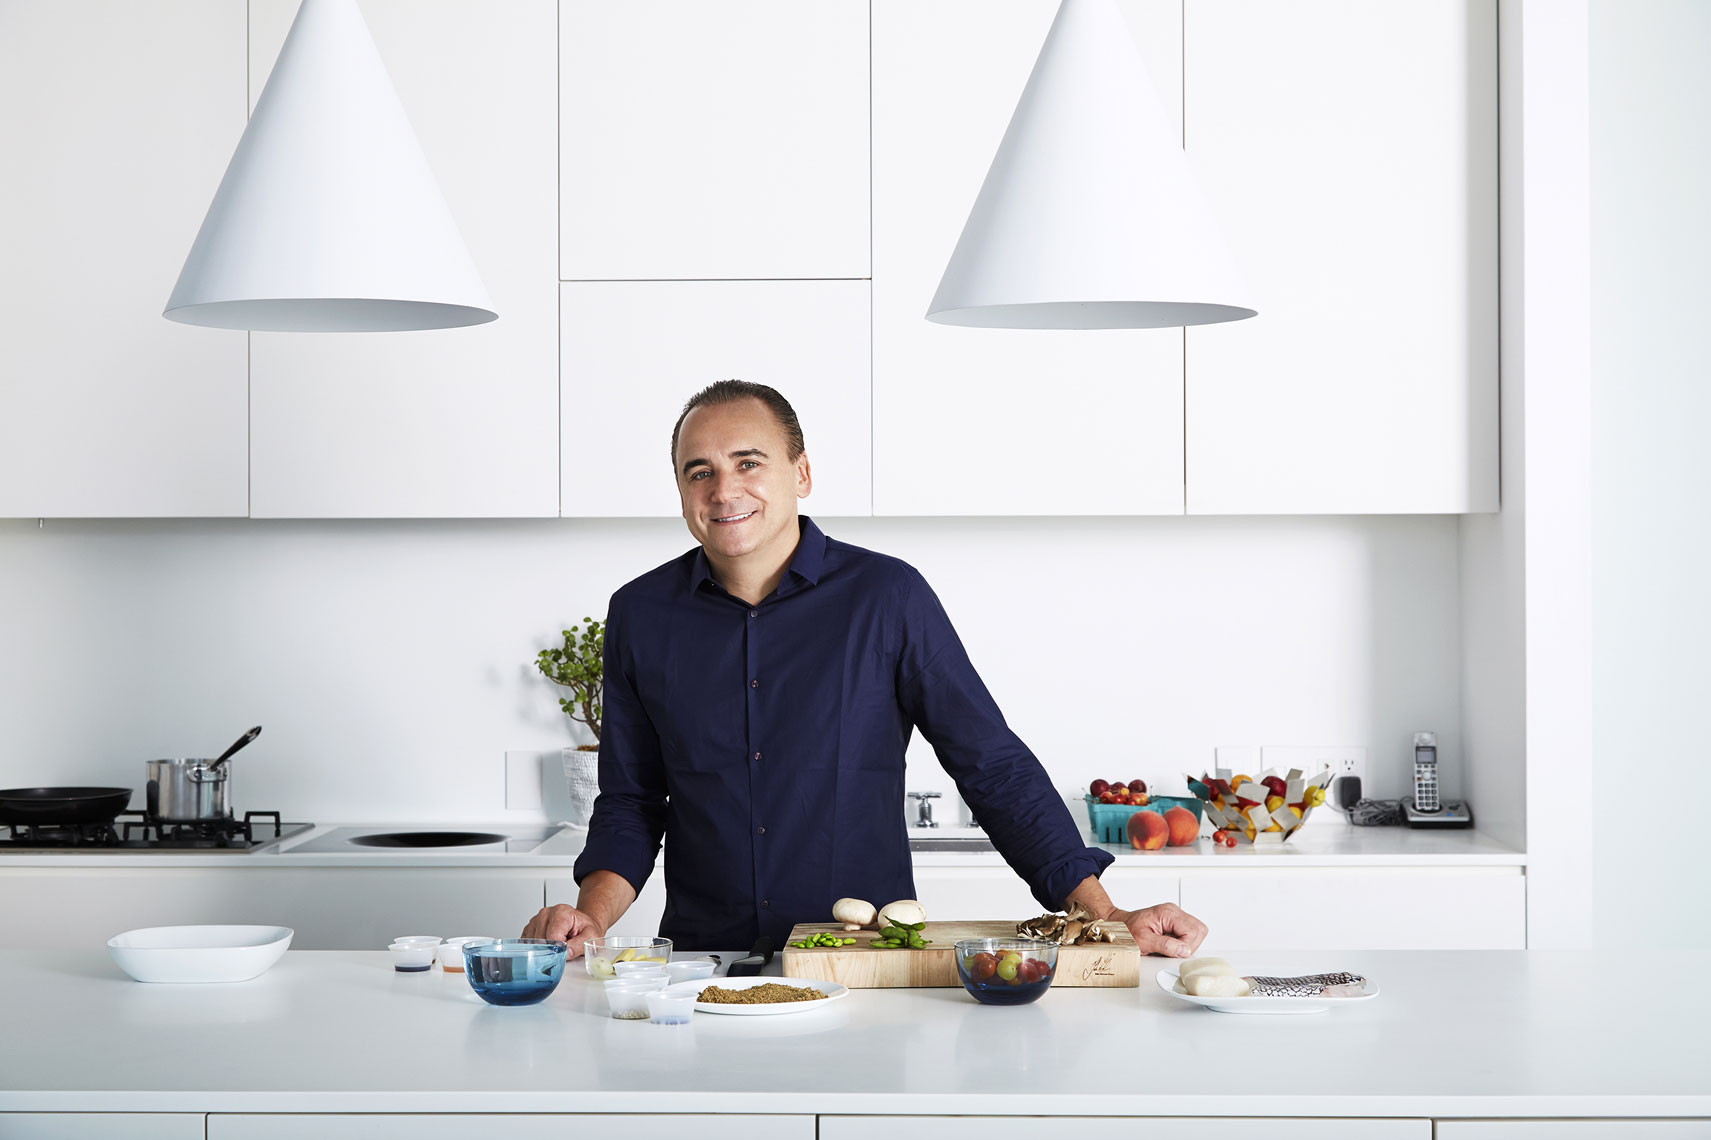 Portraits_JeanGeorges1